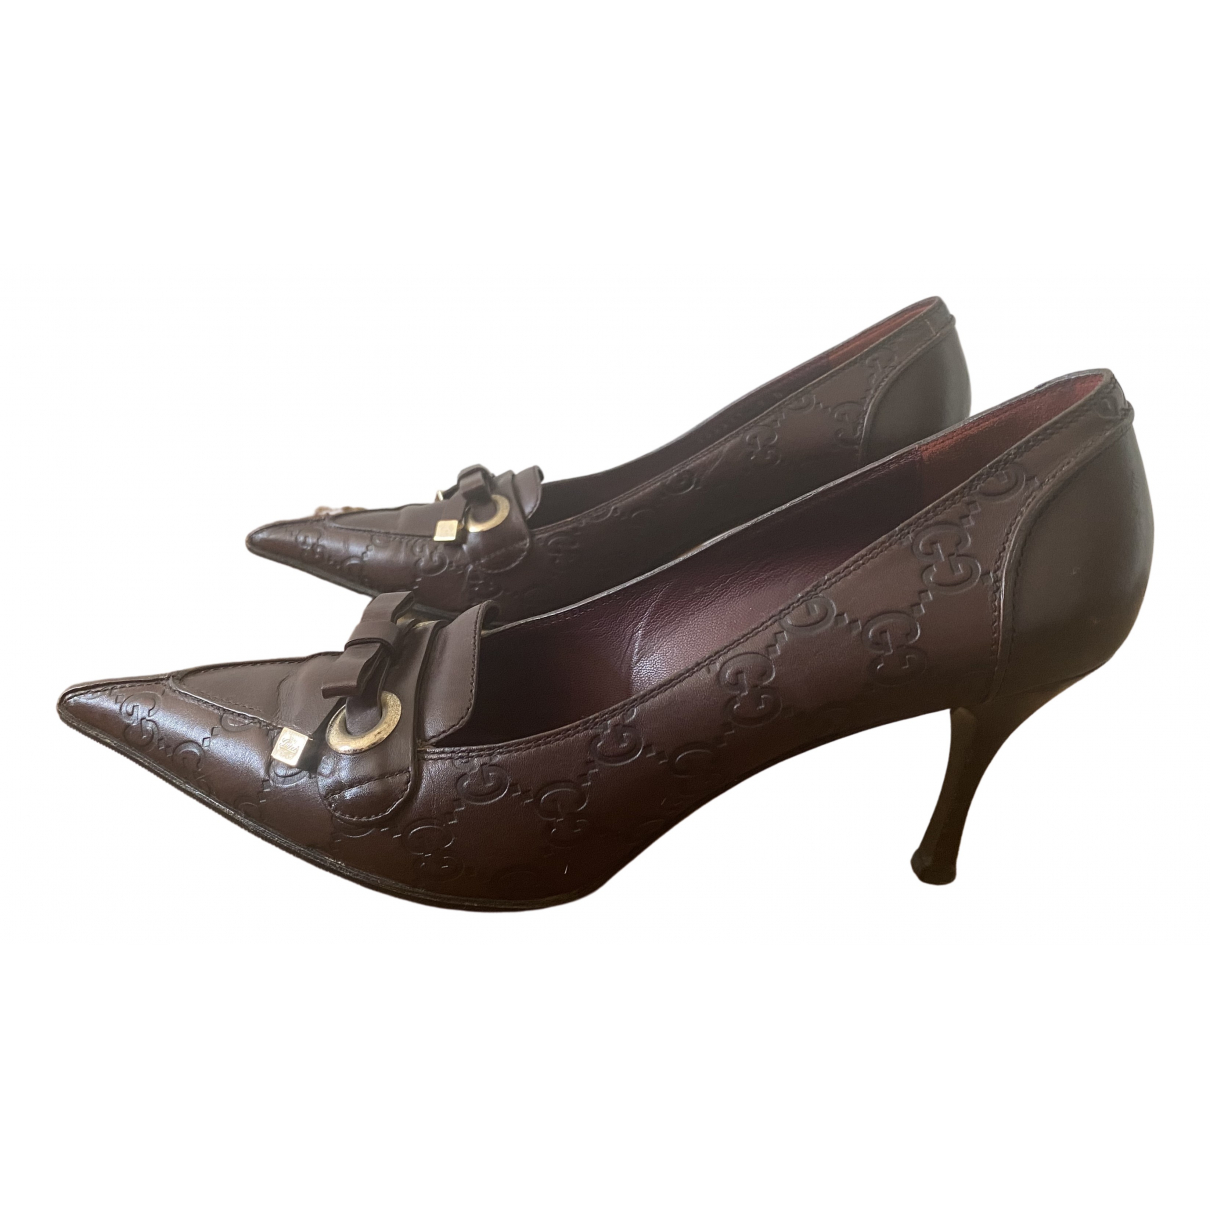 Gucci \N Burgundy Patent leather Heels for Women 9 US